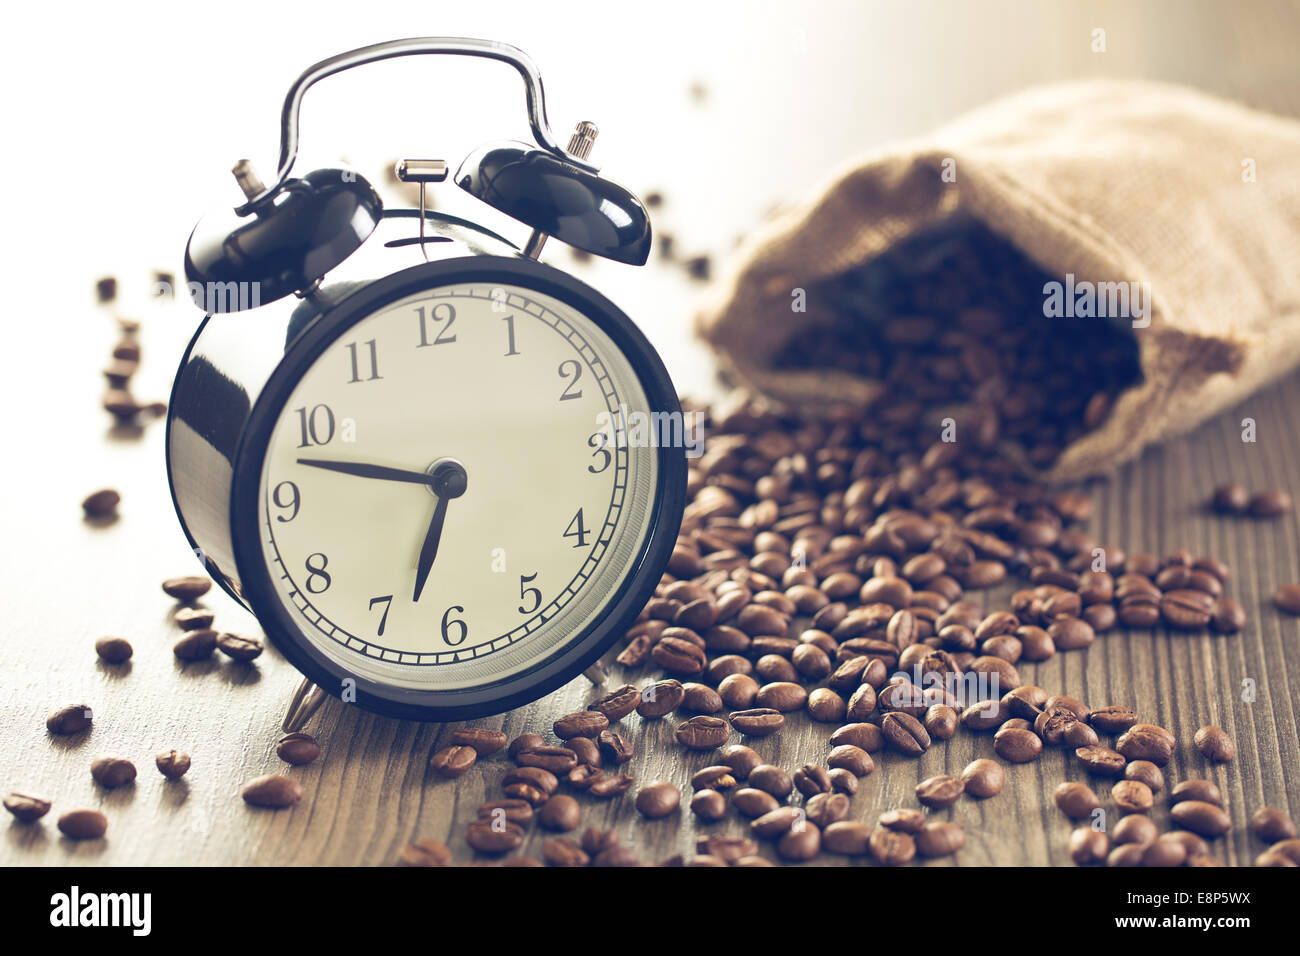 vintage alarm clock and coffee beans on wooden table - Stock Image